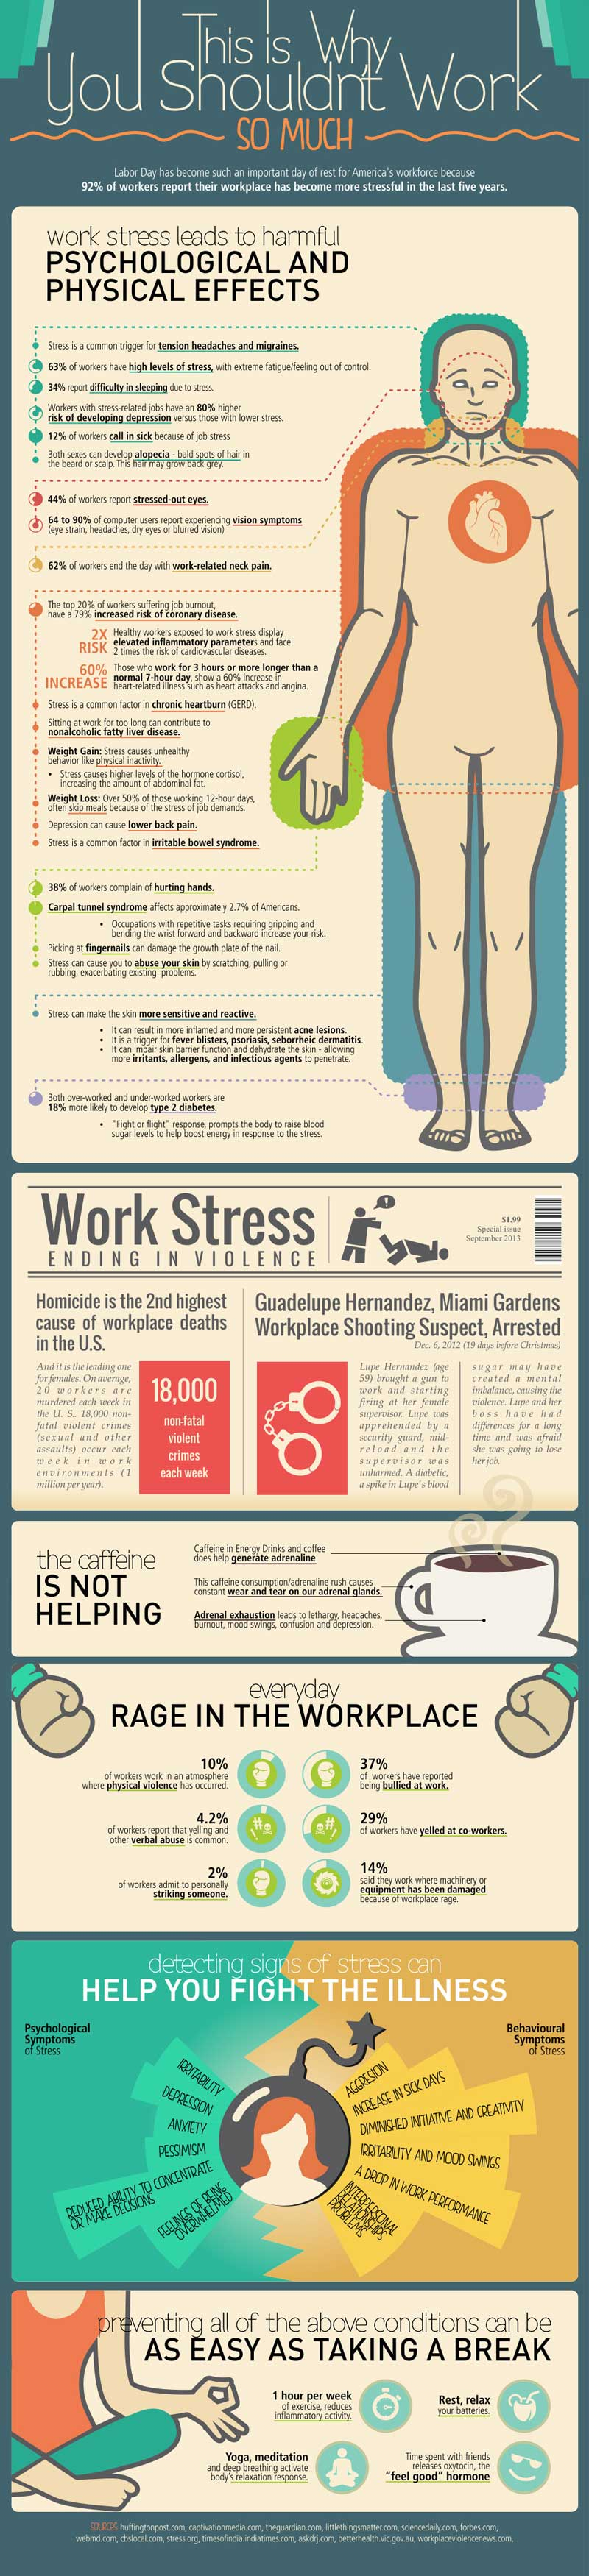 essays on stress at work The stress at workplace meeting the challenge this research article discusses the causes and impacts of workplace stresses, its role in lost productivity.